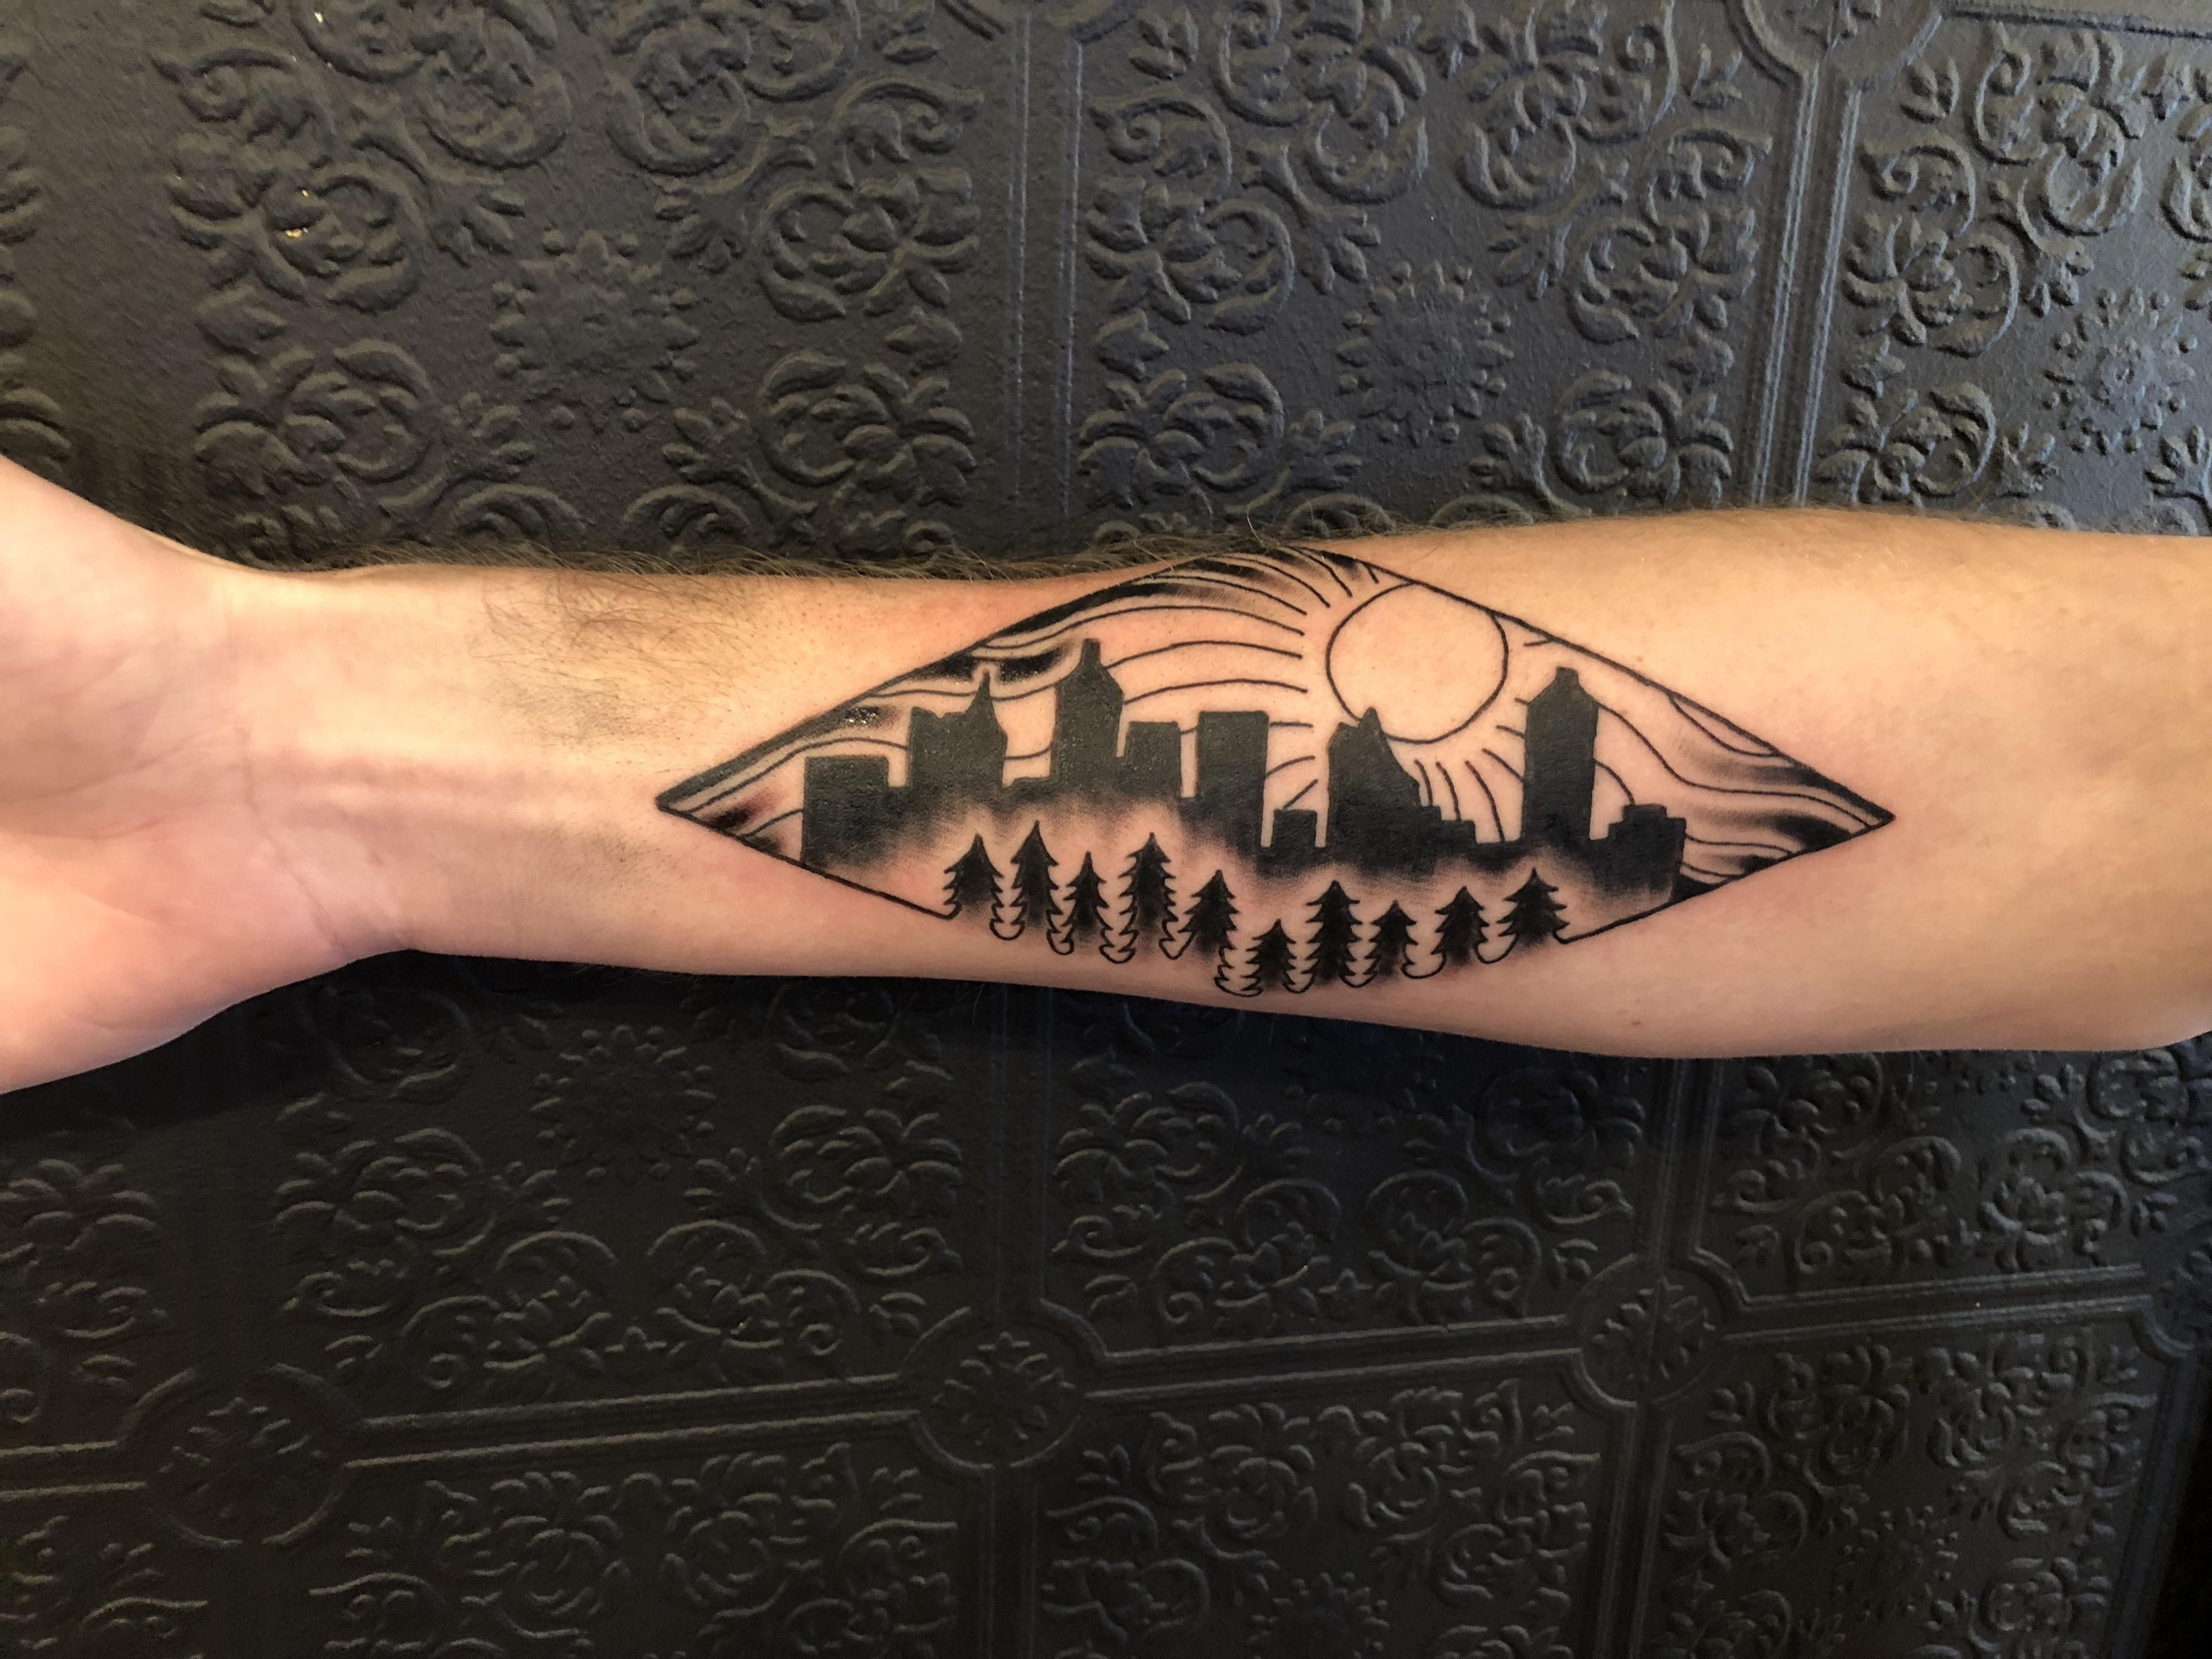 City skyline (Atlanta) among the wilderness tattooed by Britt at ...